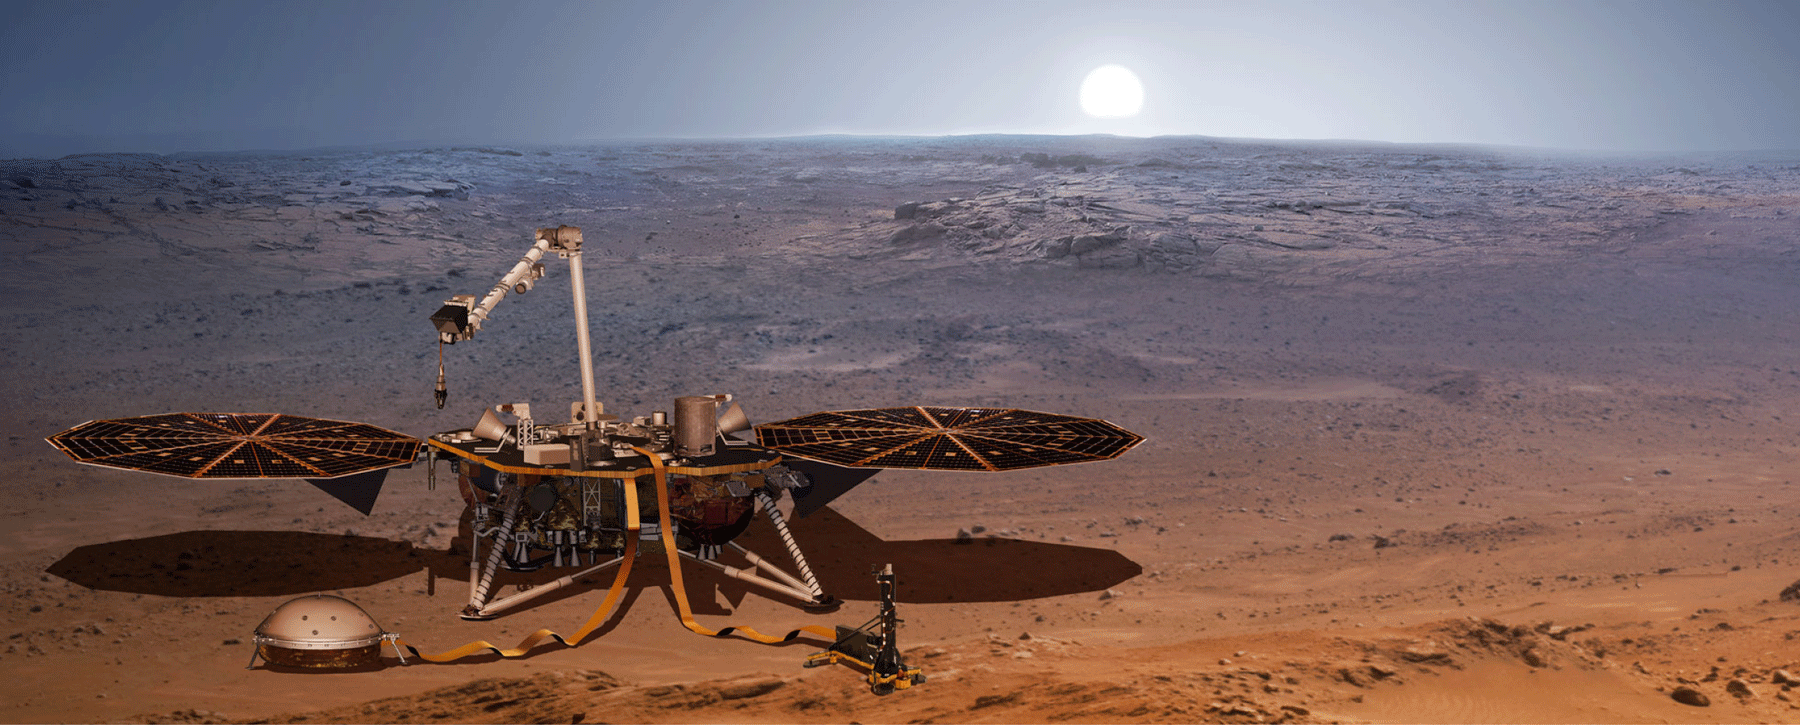 The InSight lander on the surface of the Red Planet. Image Credit: NASA